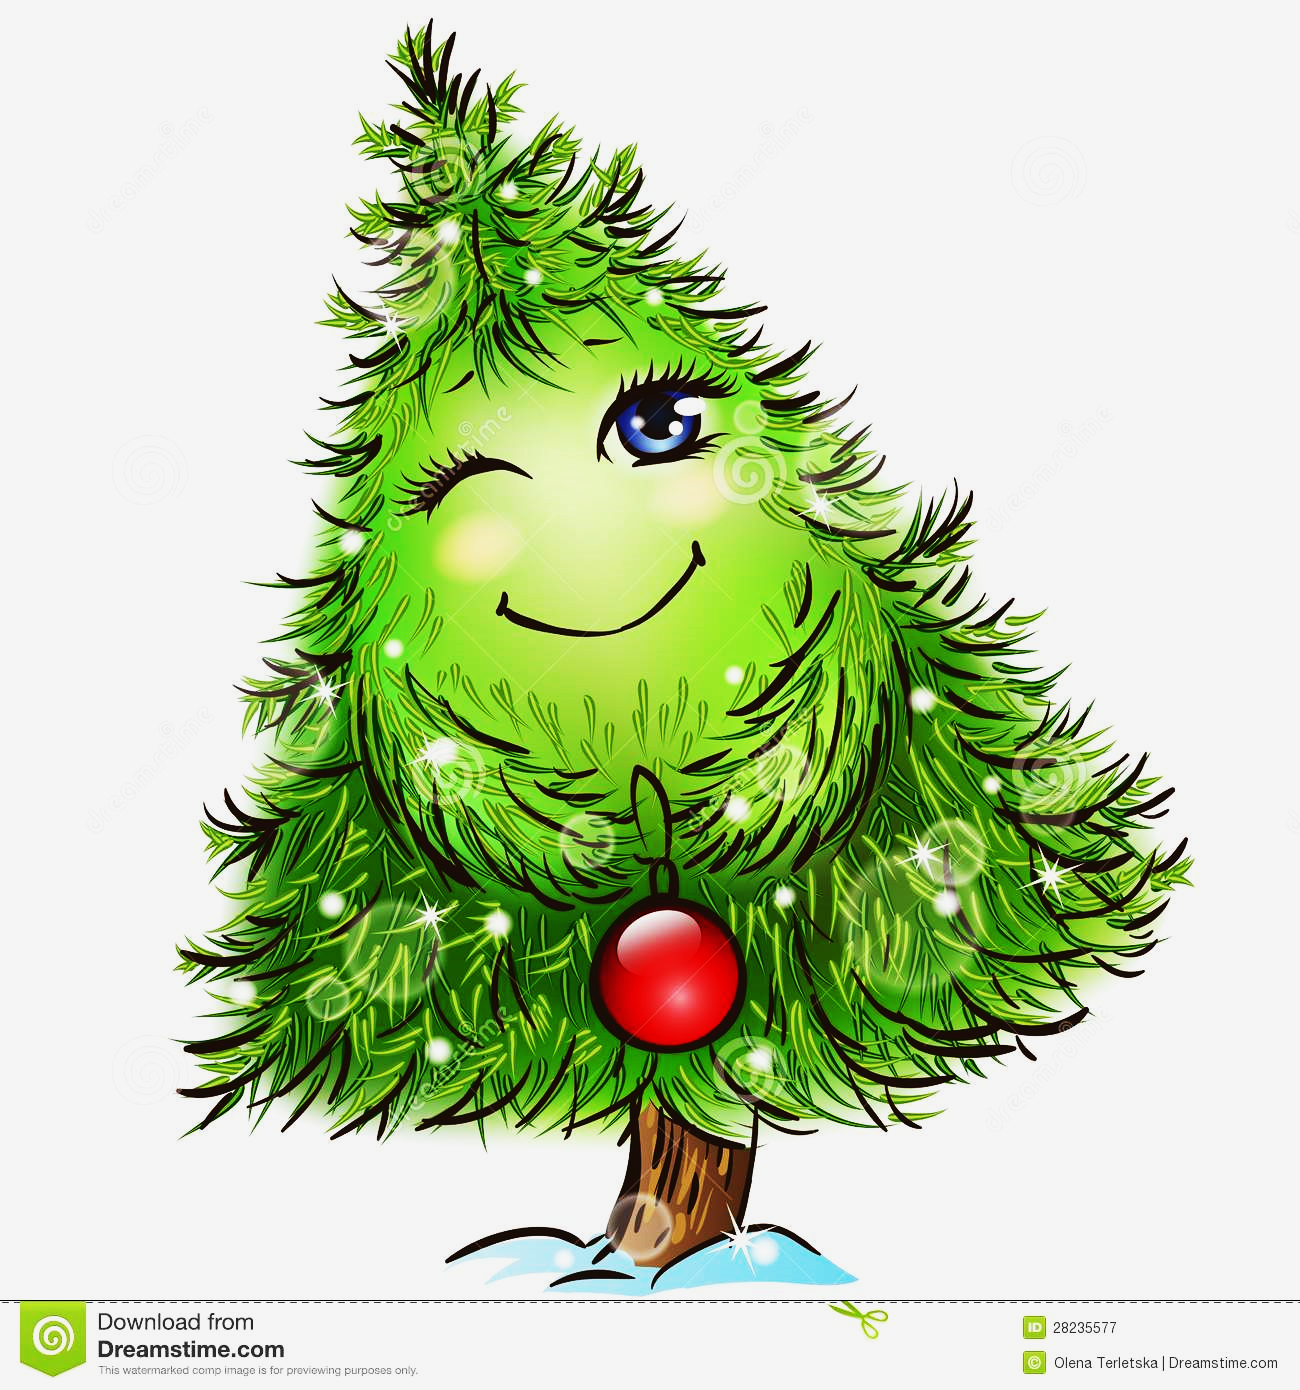 http://thumbs.dreamstime.com/z/cute-little-christmas-tree-28235577.jpg